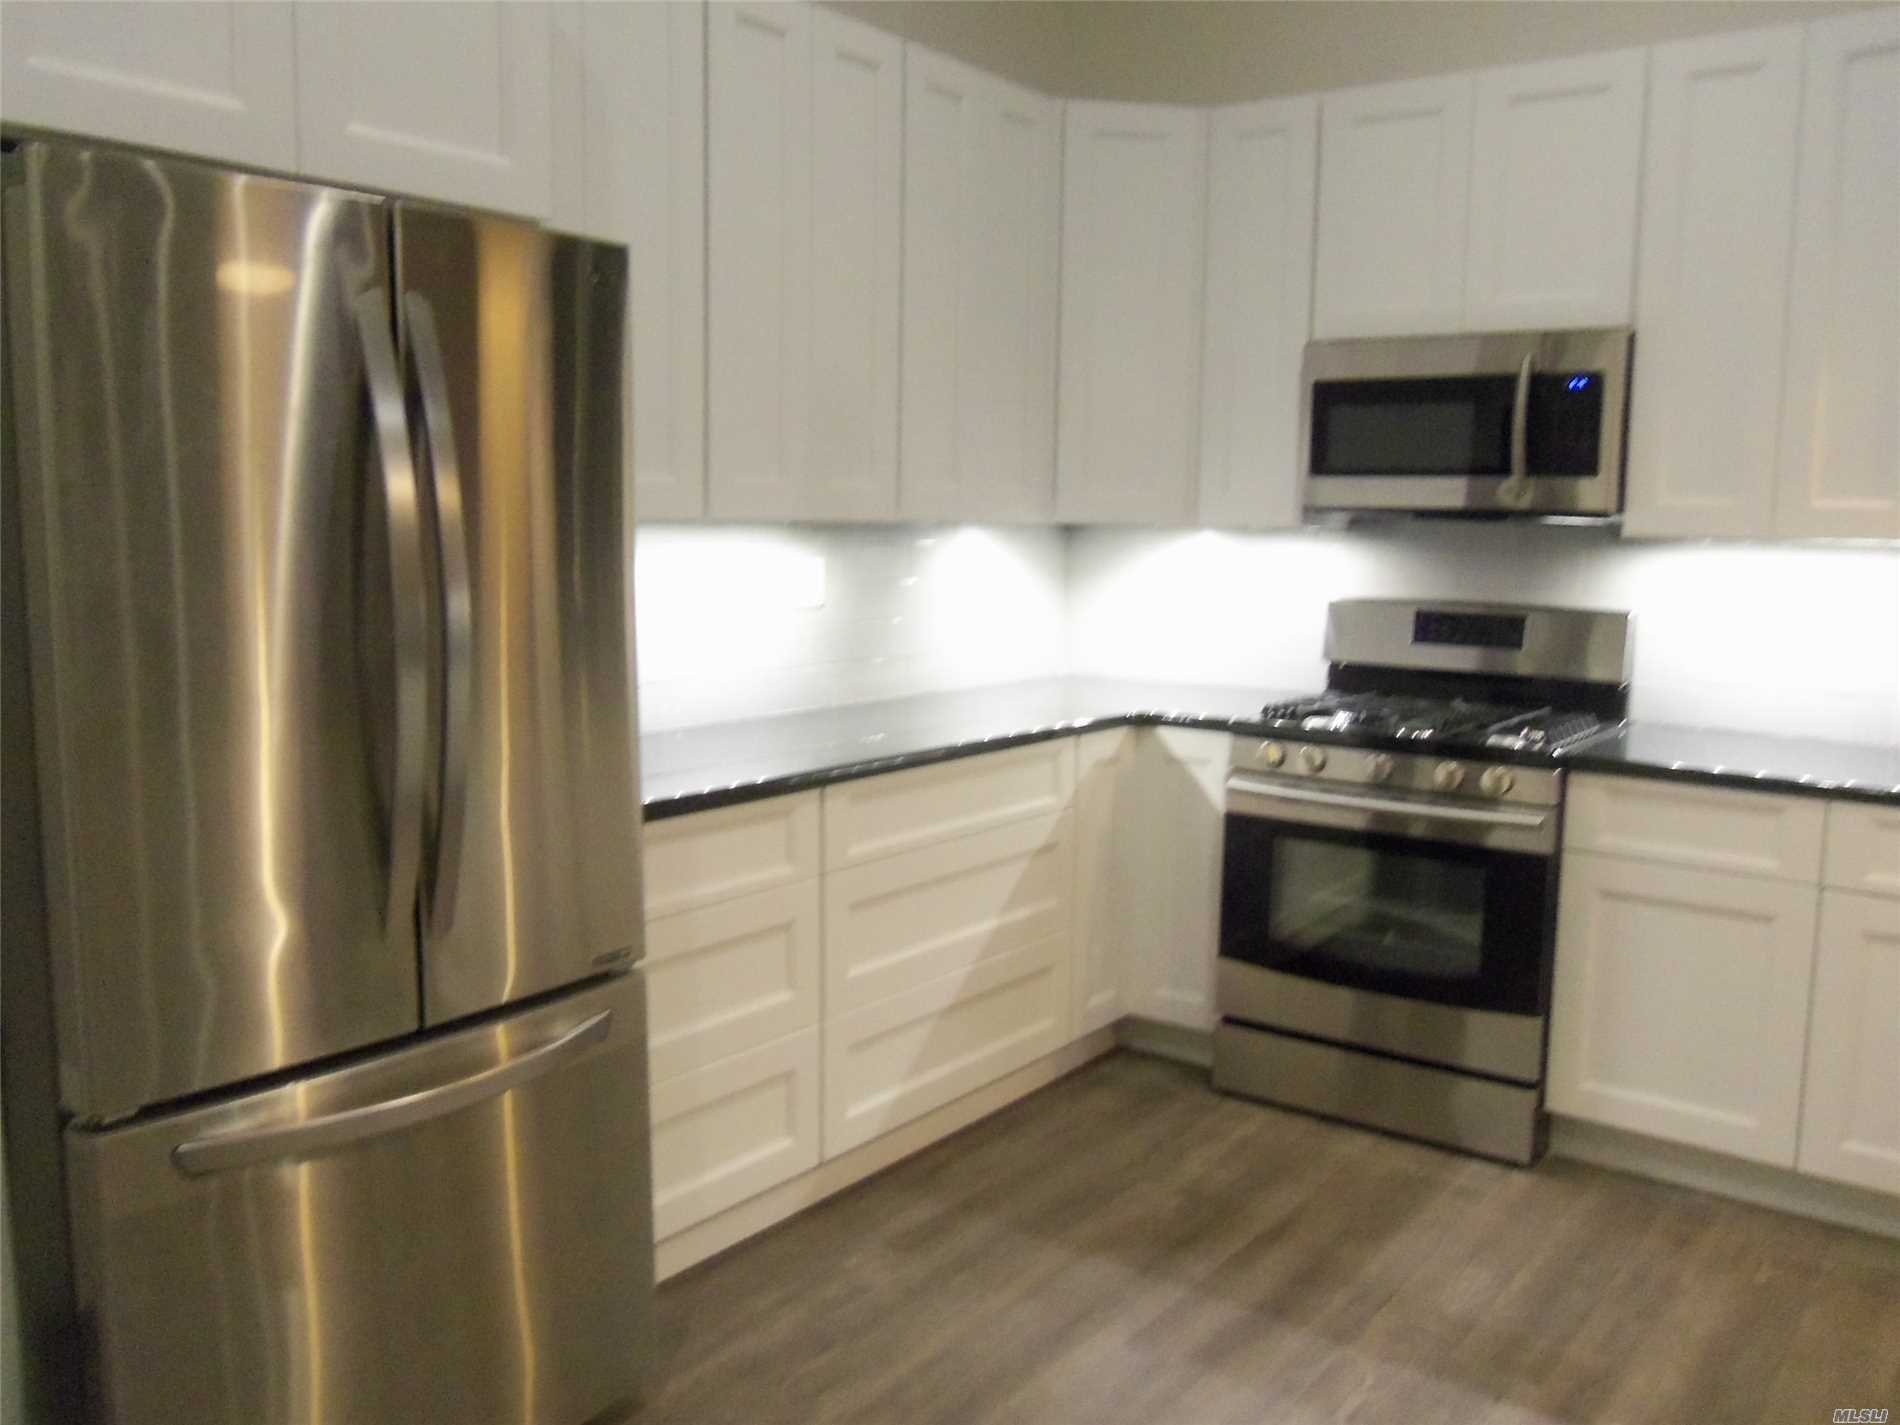 Newly Renovated Luxury One Bedroom Apartment In Elevator Building Across From The L I R R Station. High Ceilings, Exposed Brick And New Kitchen And Bath With Granite Counters. Amenities Include Central Air Conditioning, Own Thermostat And All Appliances Including Dishwasher, Microwave & Washer And Dryer. Large Bedroom And Walk-In Closet! No Pets Or Smoking. Good Credit A Must!